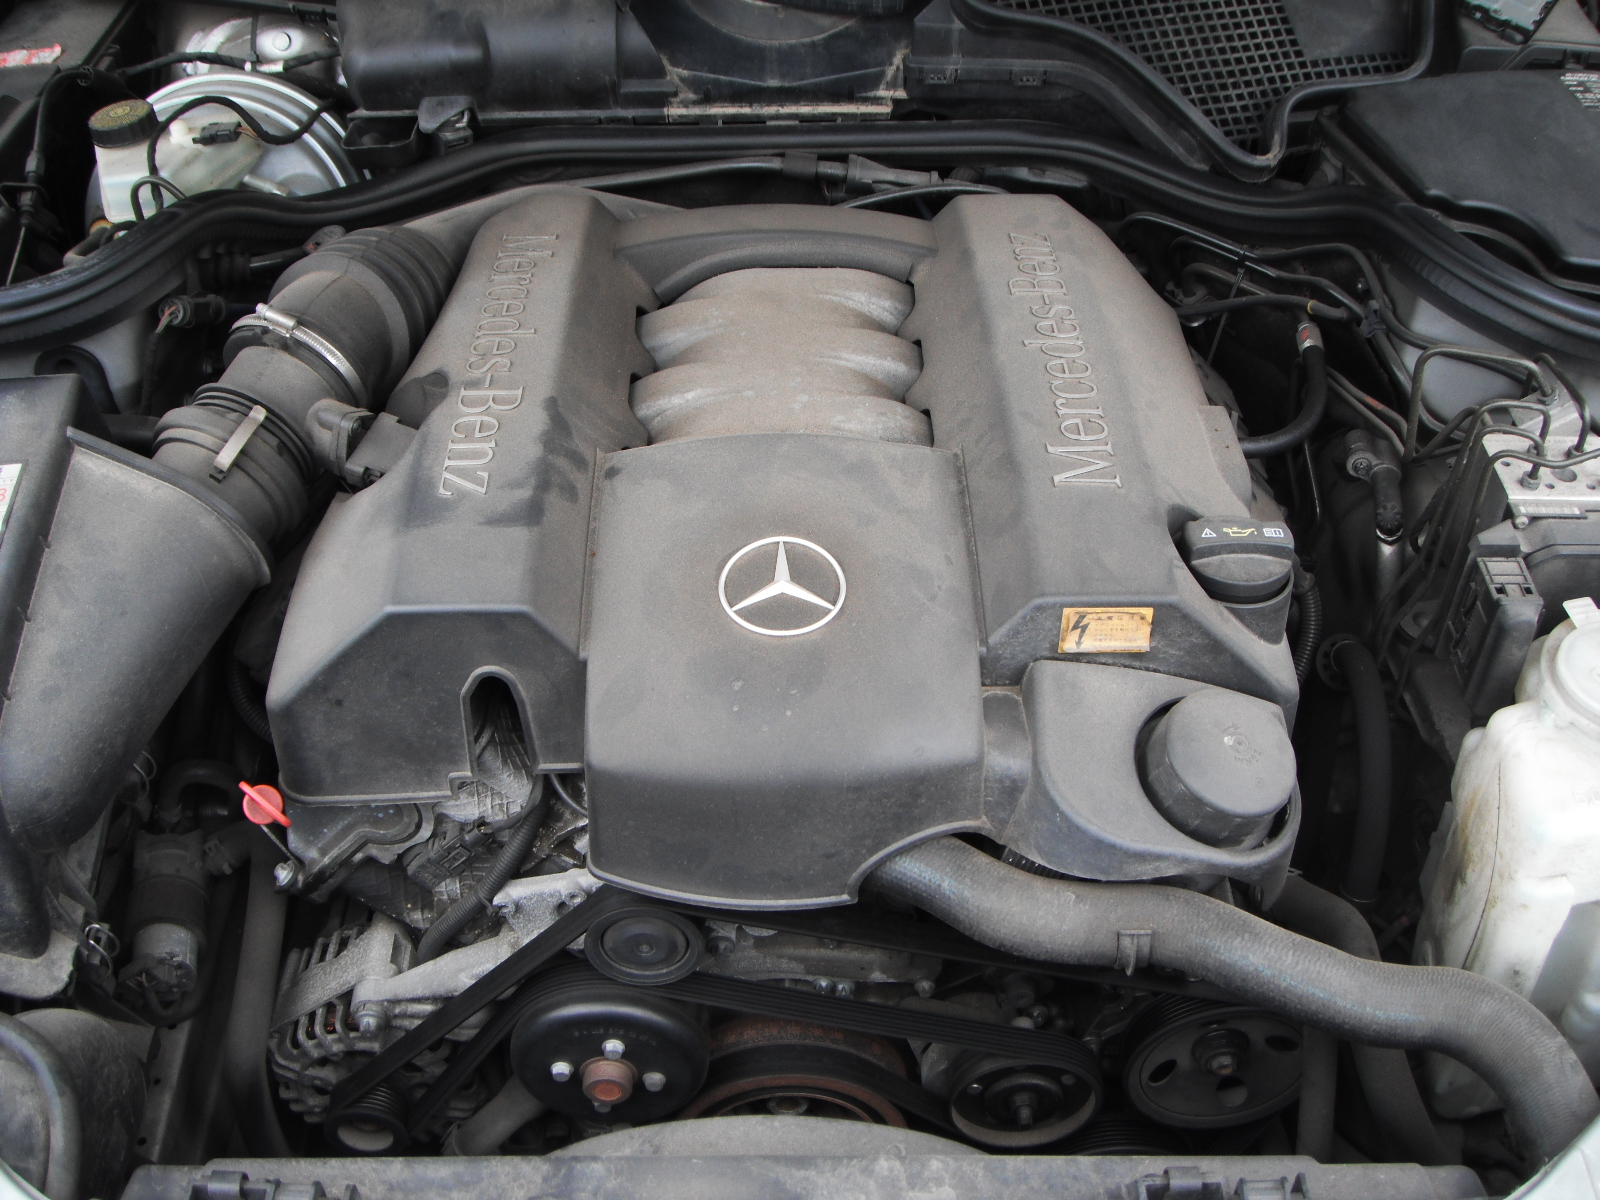 This Vehicle Is For Used Mercedes Benz We Sell Any Used Car Parts We Have Please Feel Free To